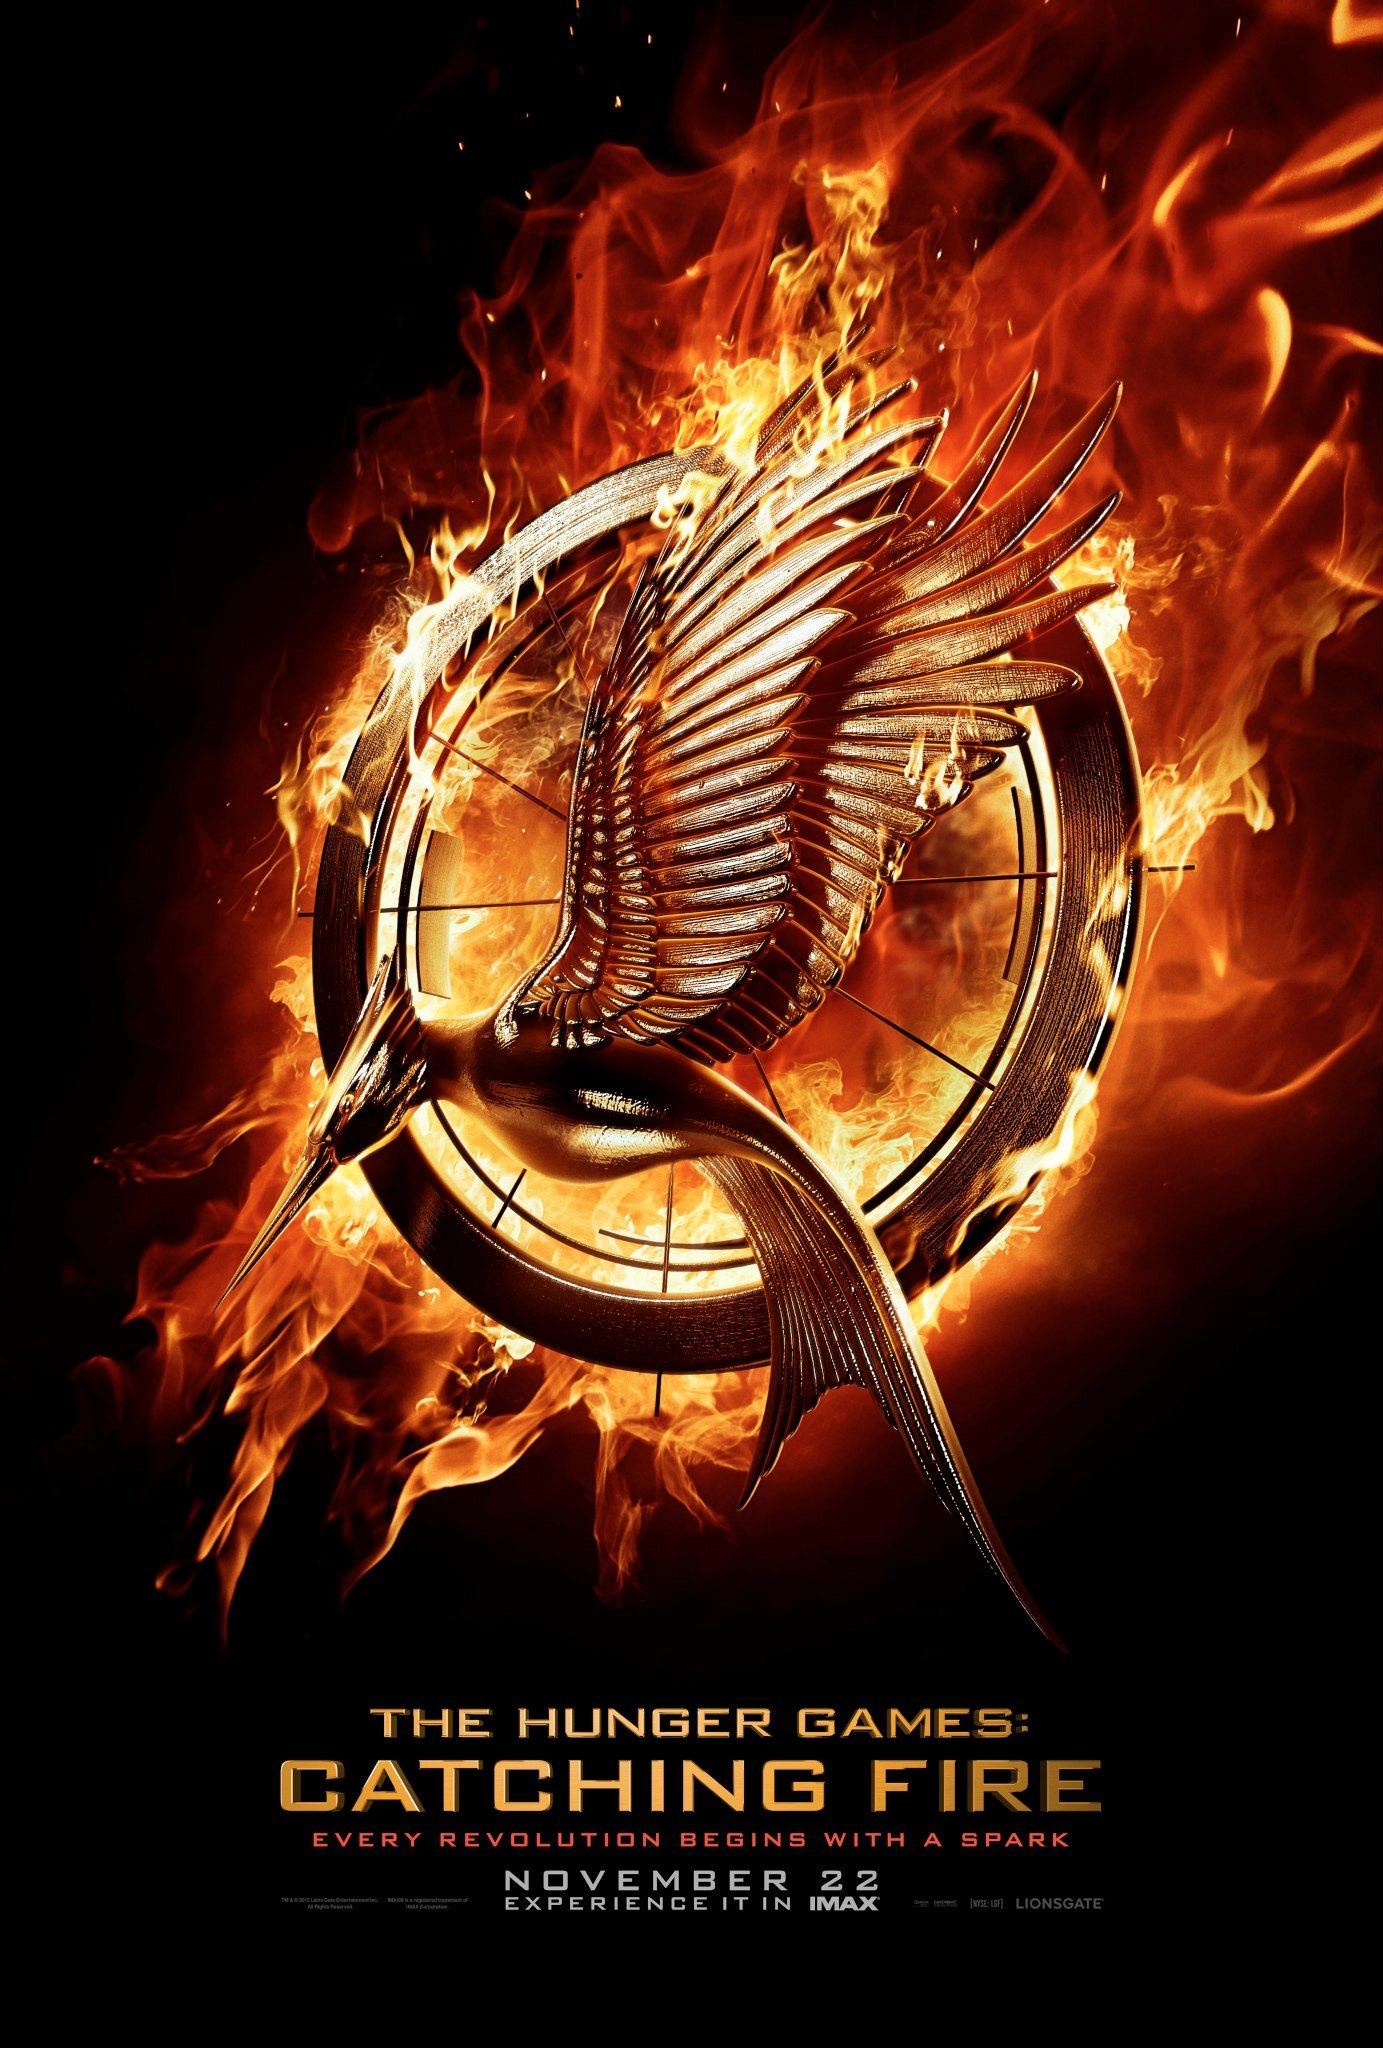 The Hunger Games: Catching Fire - Movie Poster #14 (Original)